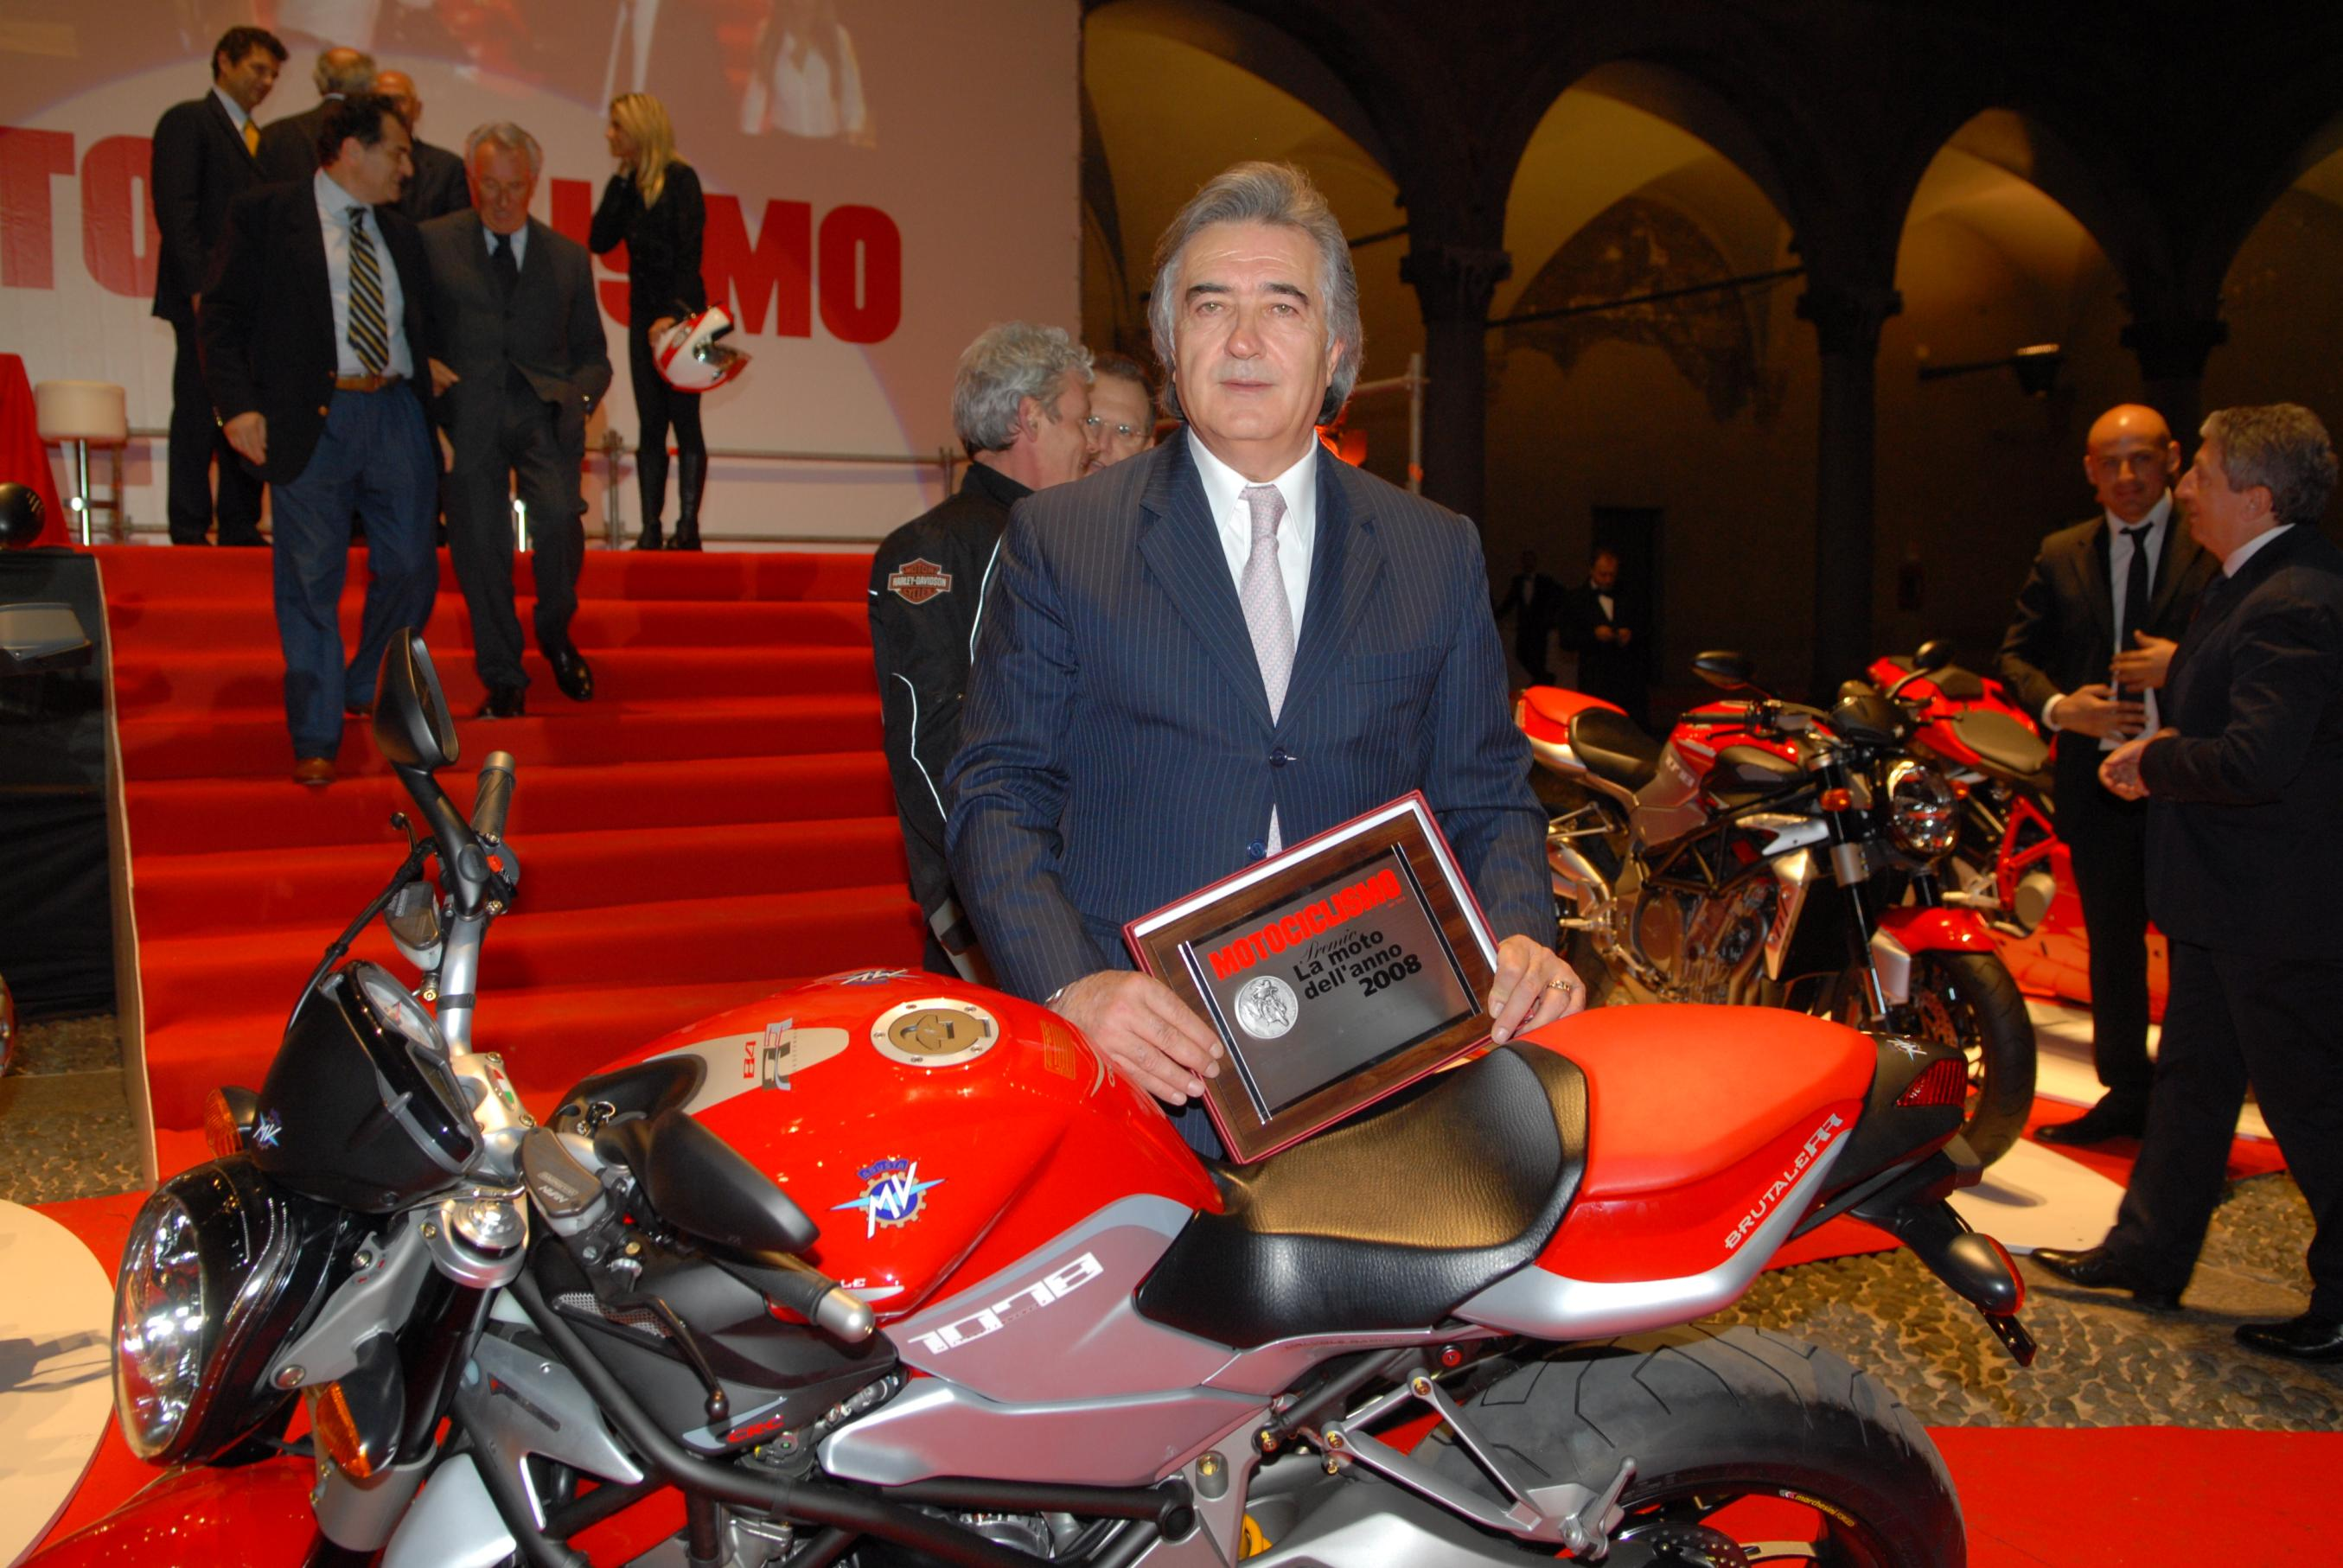 Harley Davidson has sold back the MV Agusta brand to Claudio Castiglioni for the price of one Euro, hence ending its two year long ownership over the Italian marquee